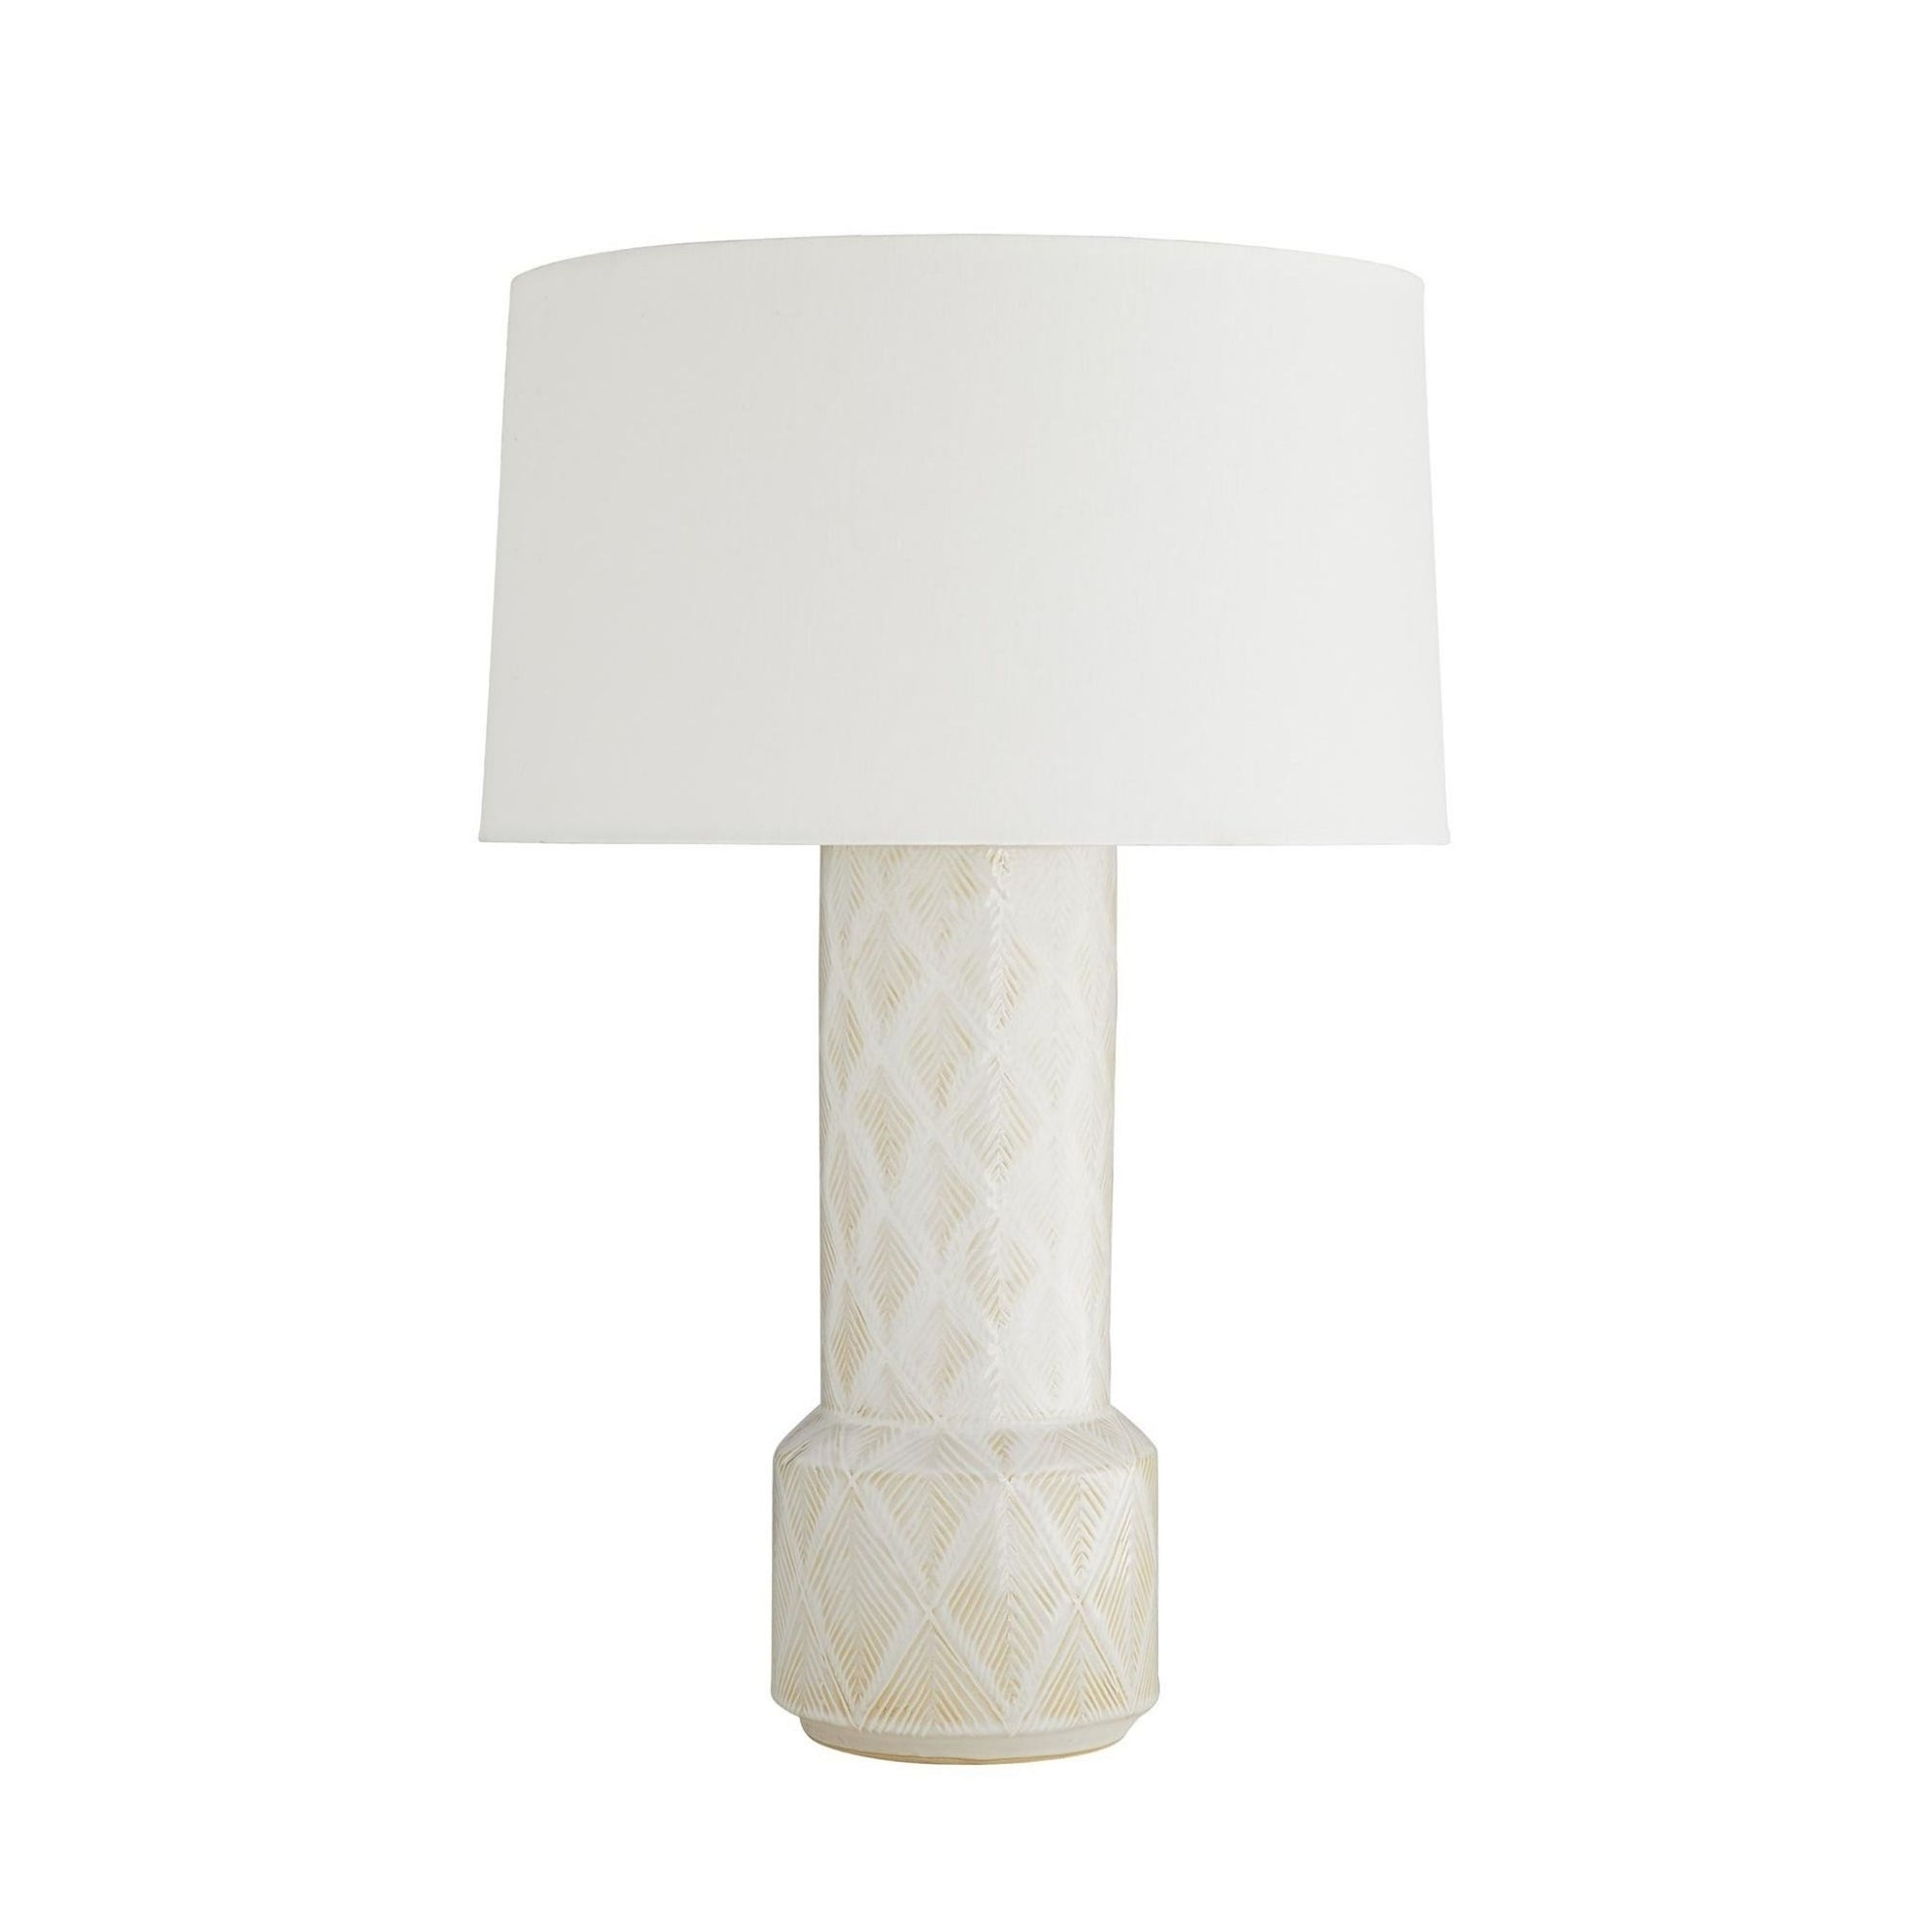 Tory Table Lamp